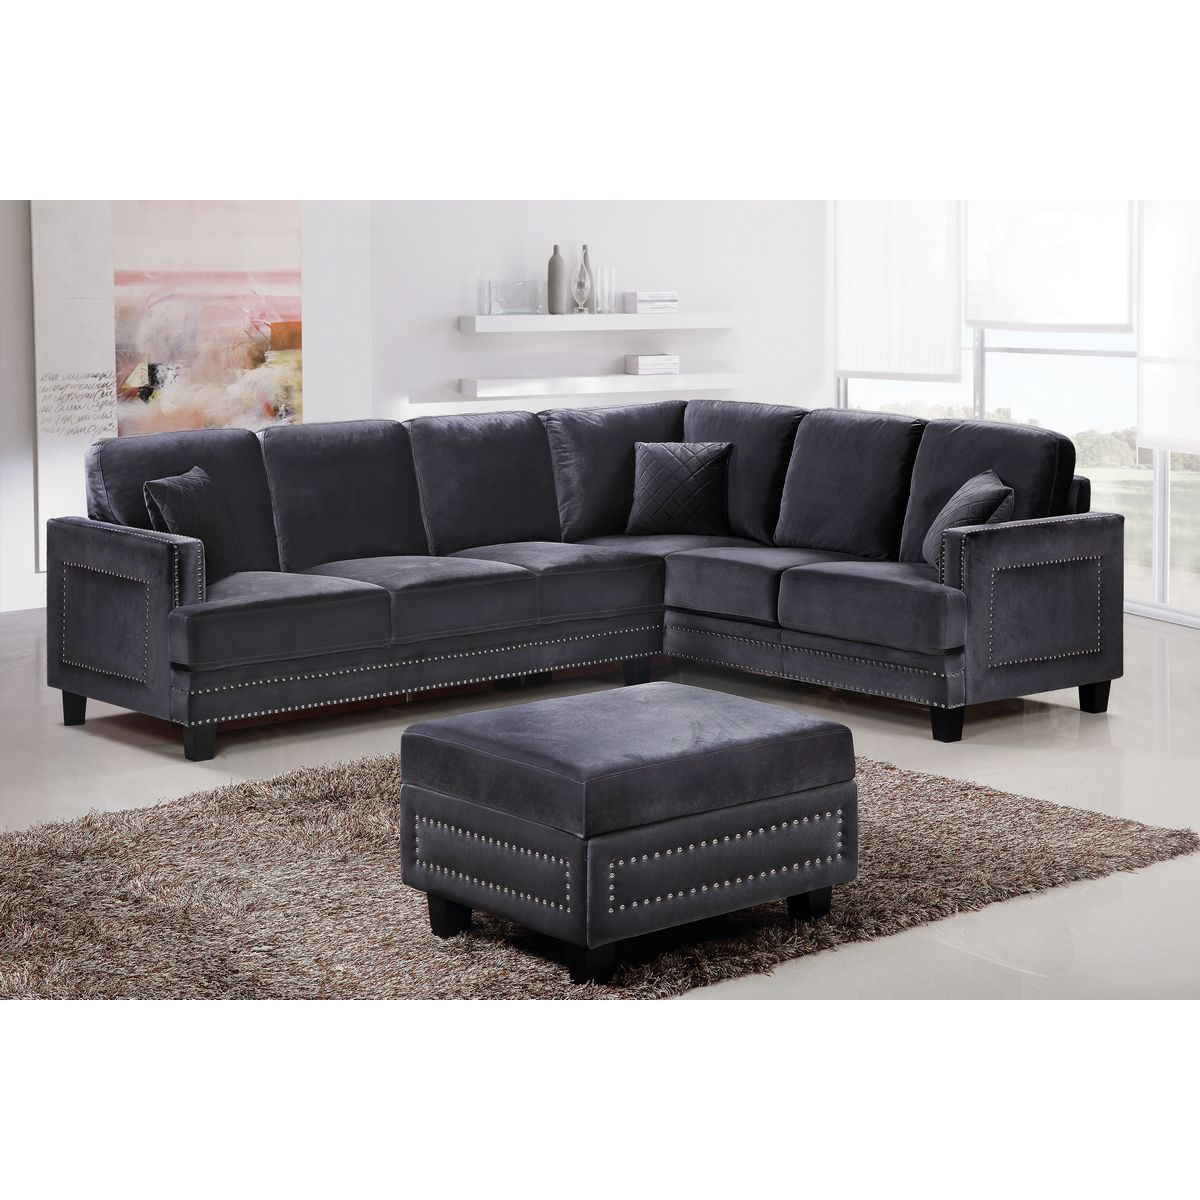 sofa nailhead mickey bed gray with trim velvet